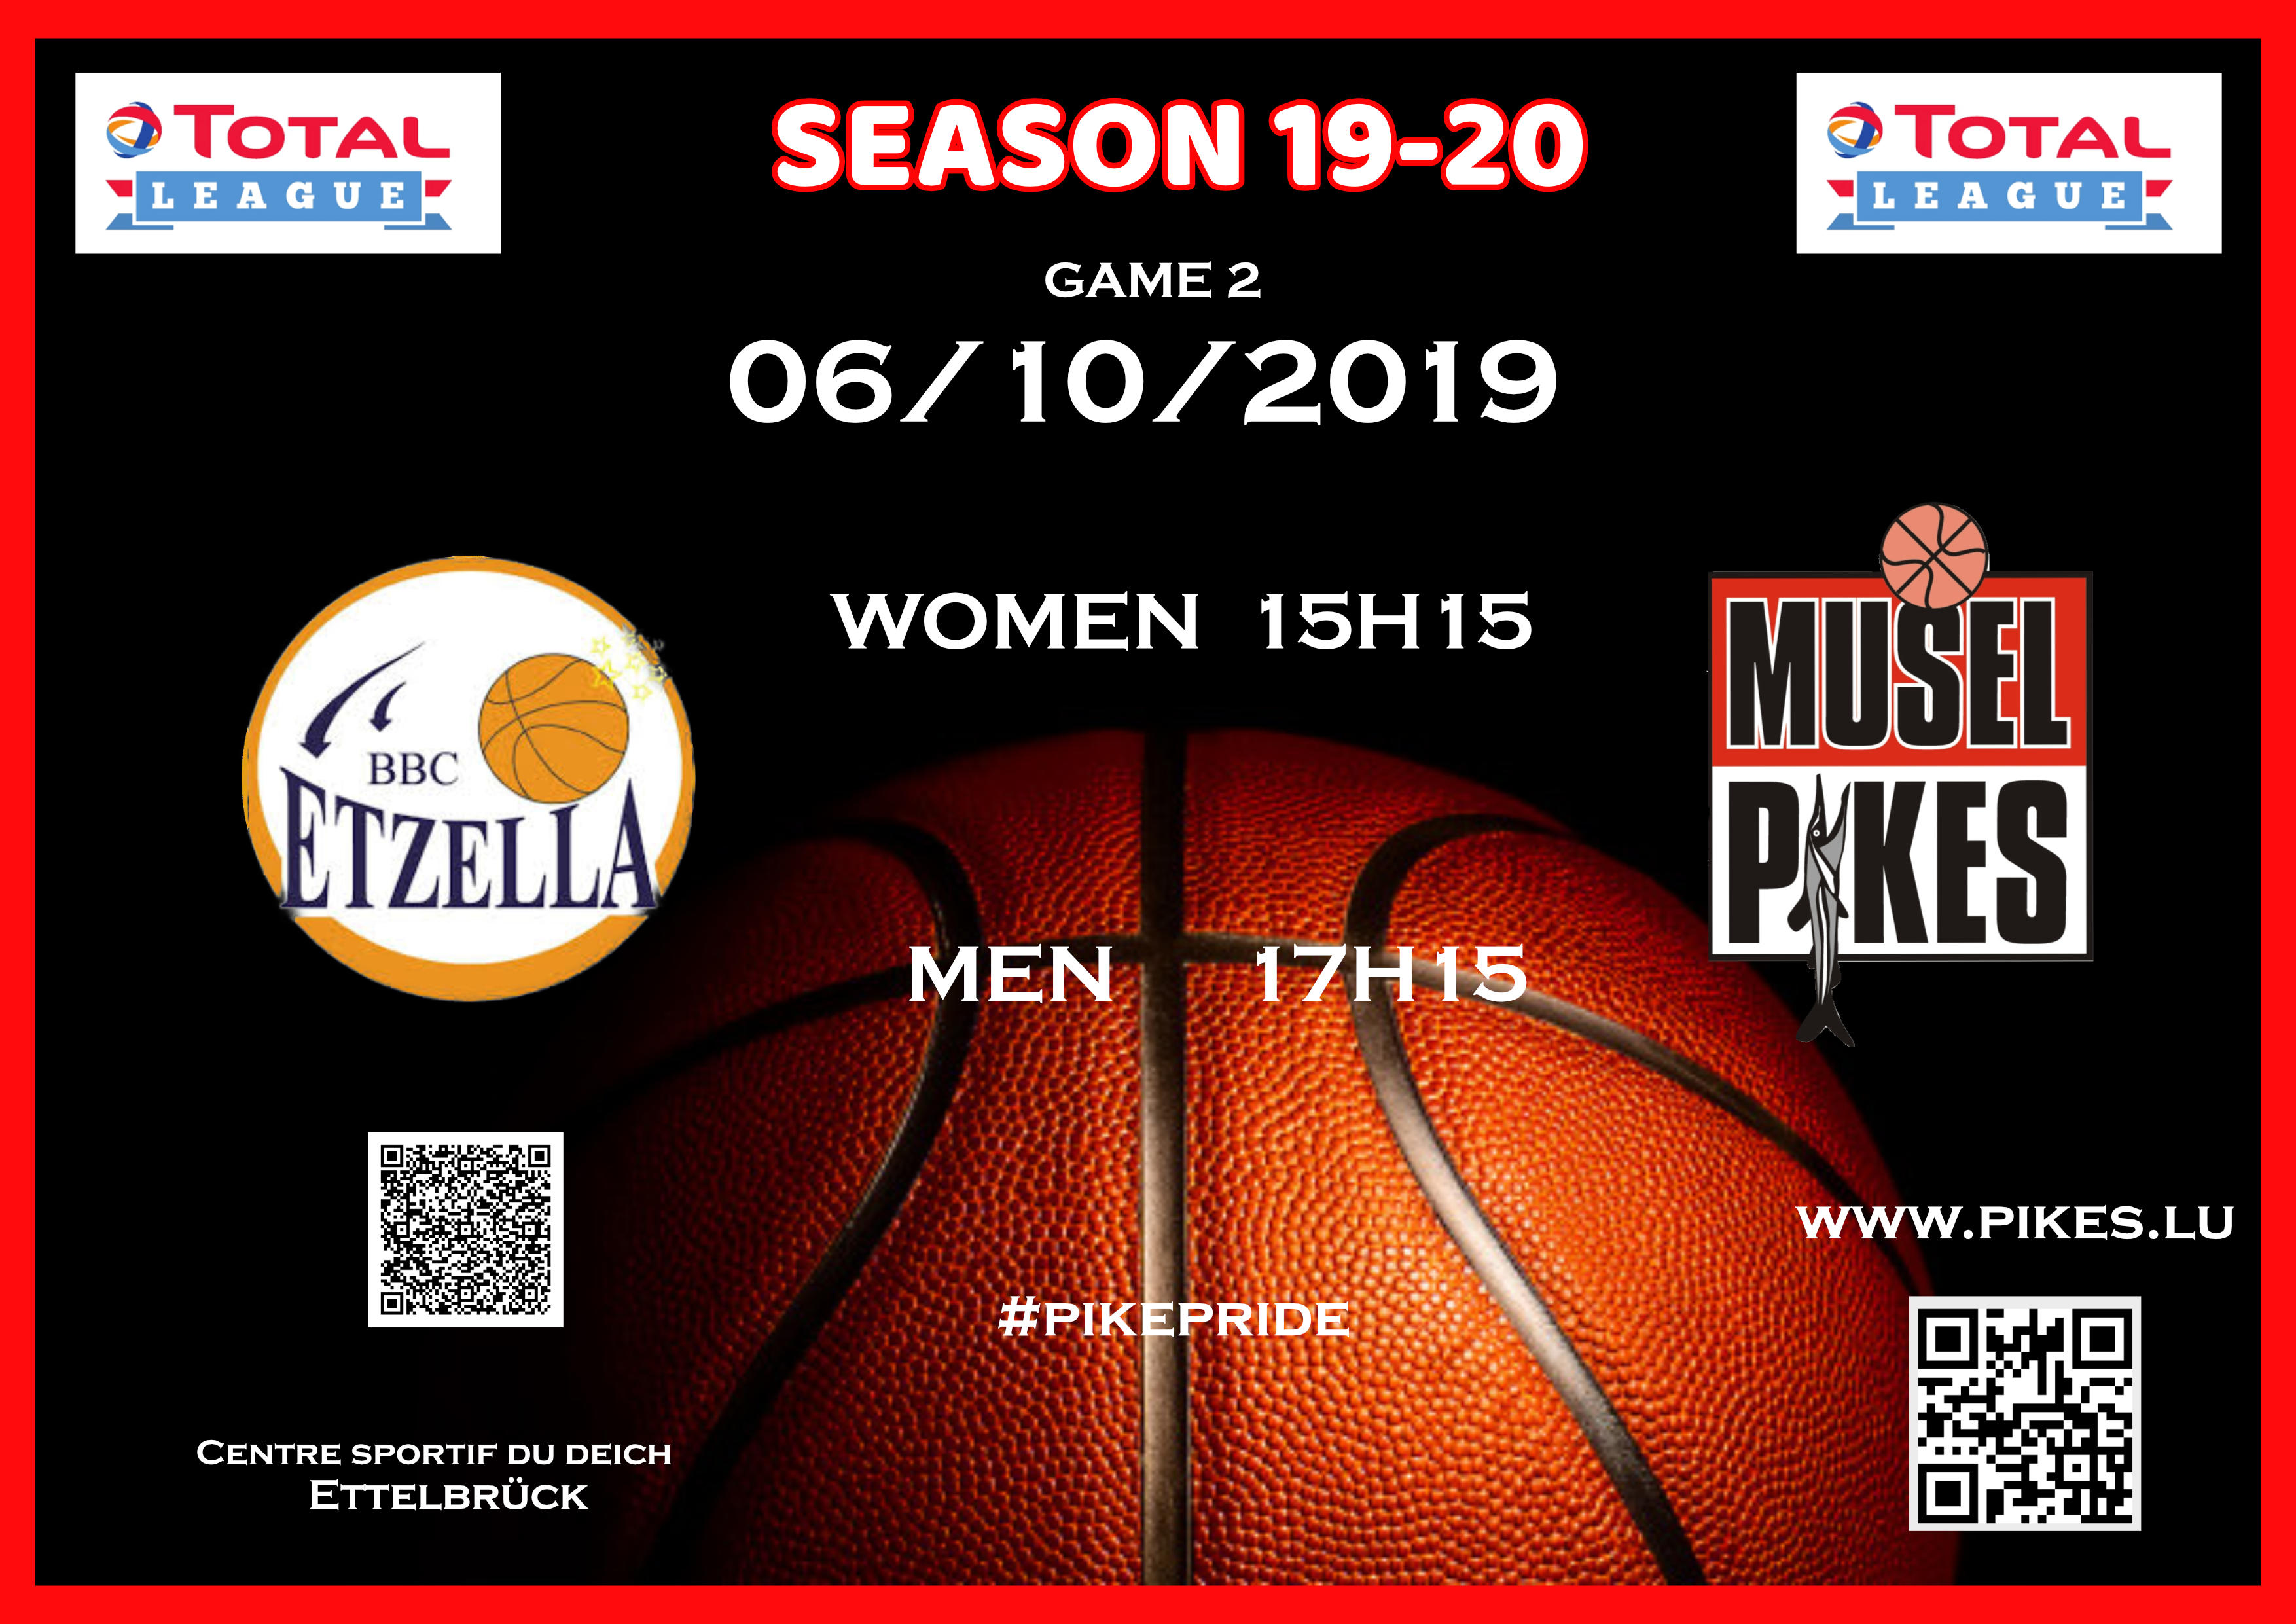 come and support our teams in Ettelbrück